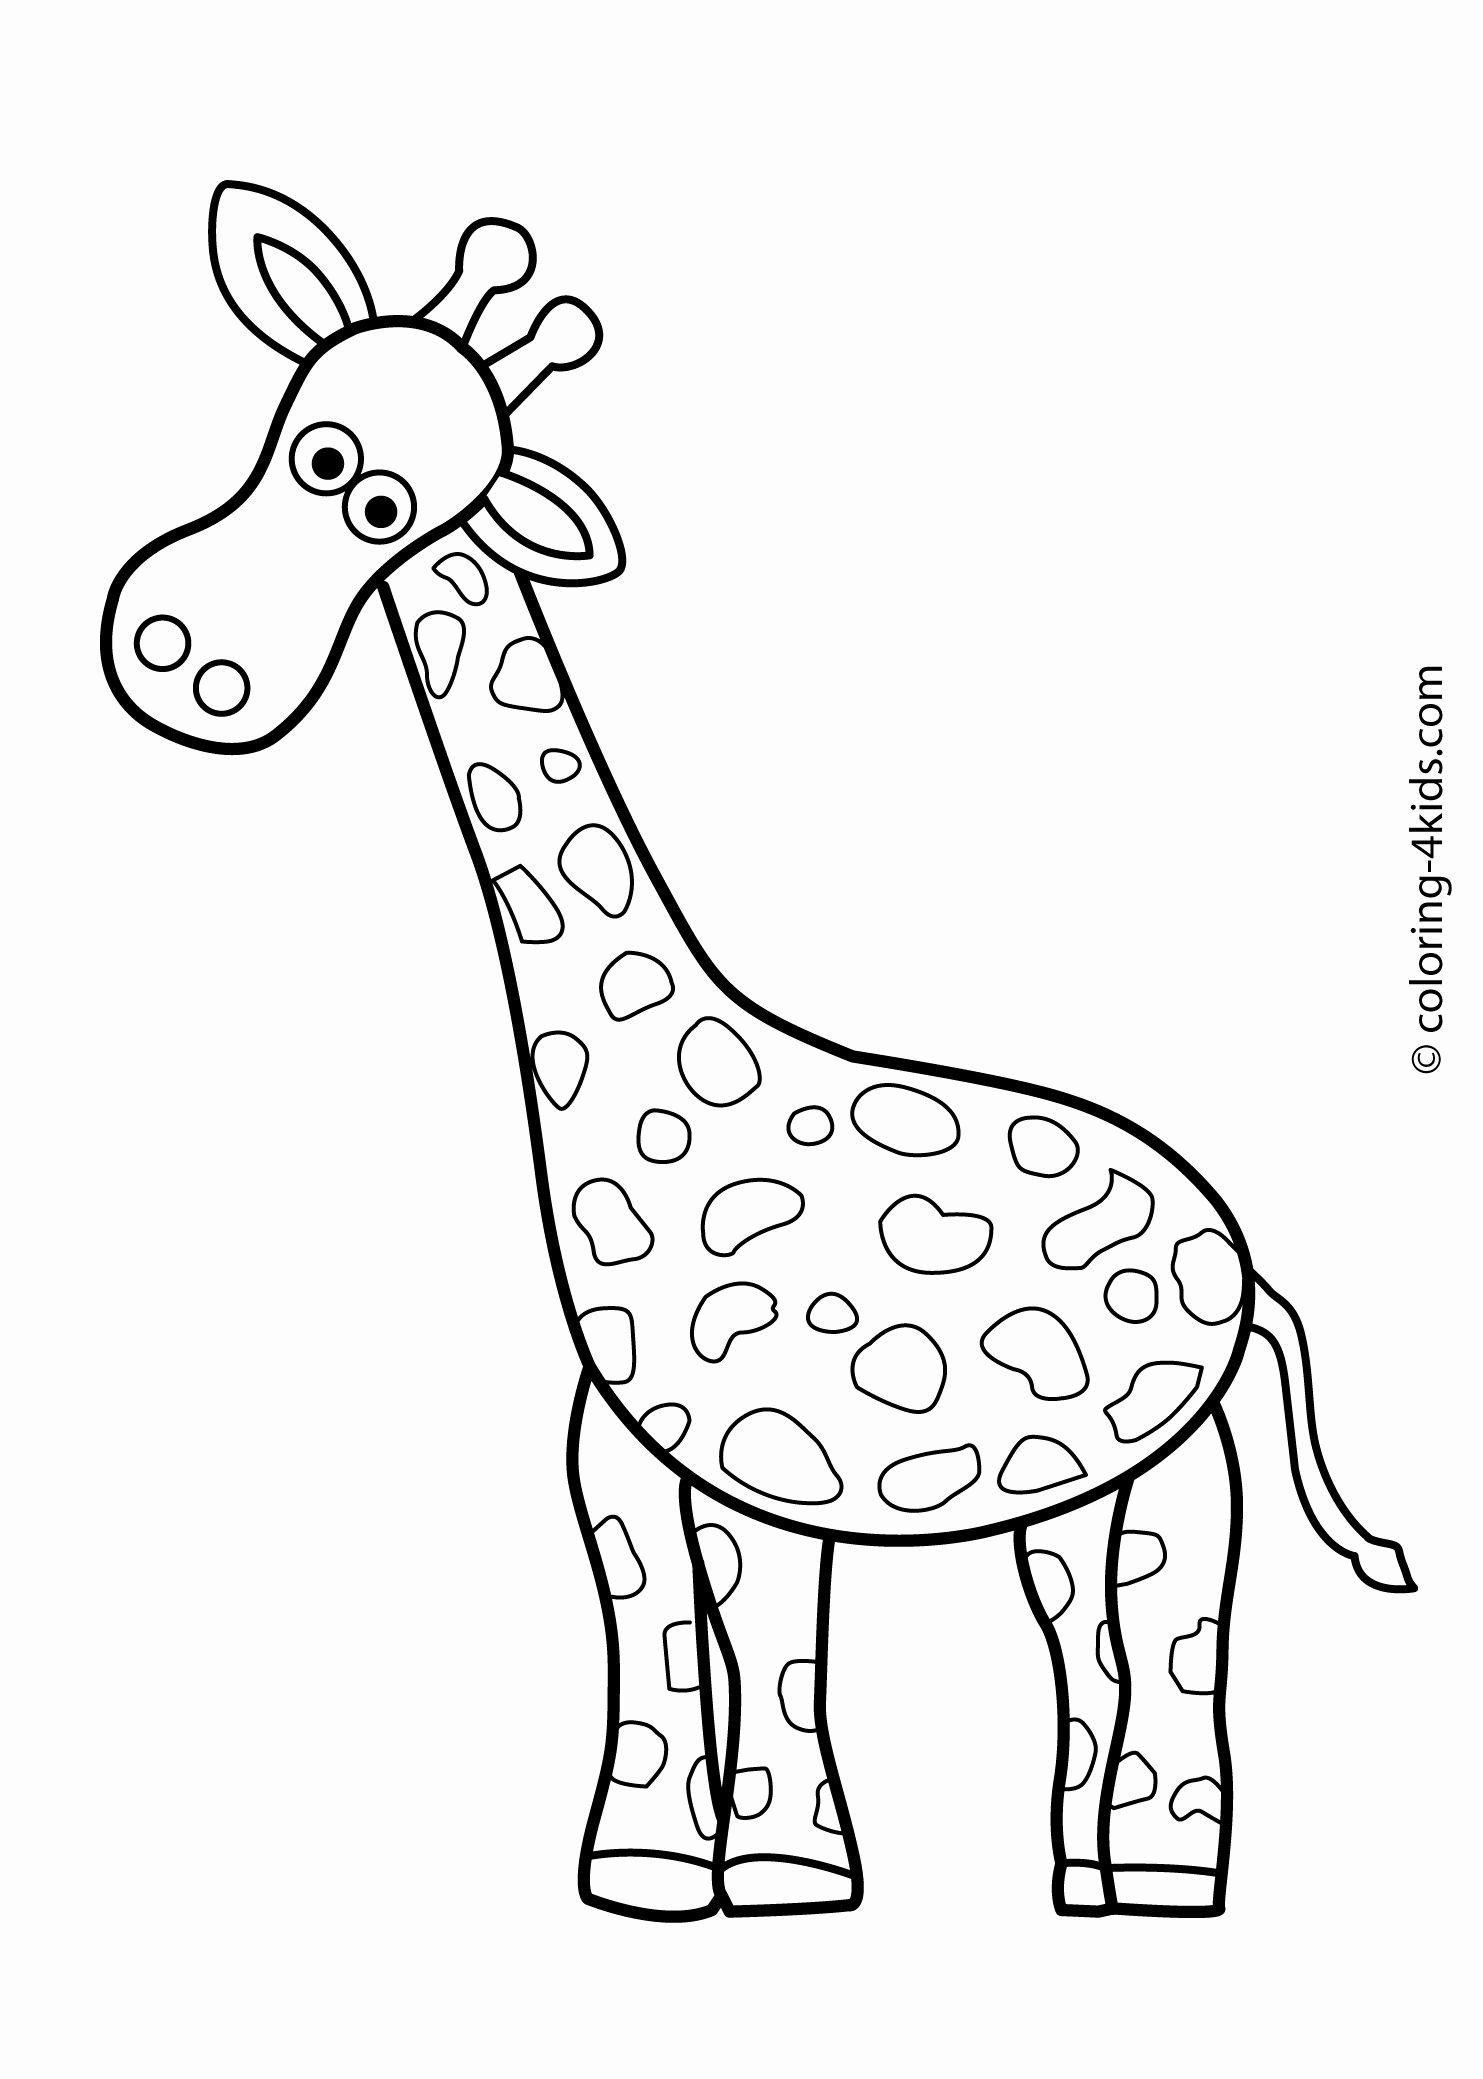 Animals Coloring Pages Free Coloring Pages Free Coloring Zoo Animals Fresh For Animal Zoo Animal Coloring Pages Giraffe Coloring Pages Animal Coloring Pages